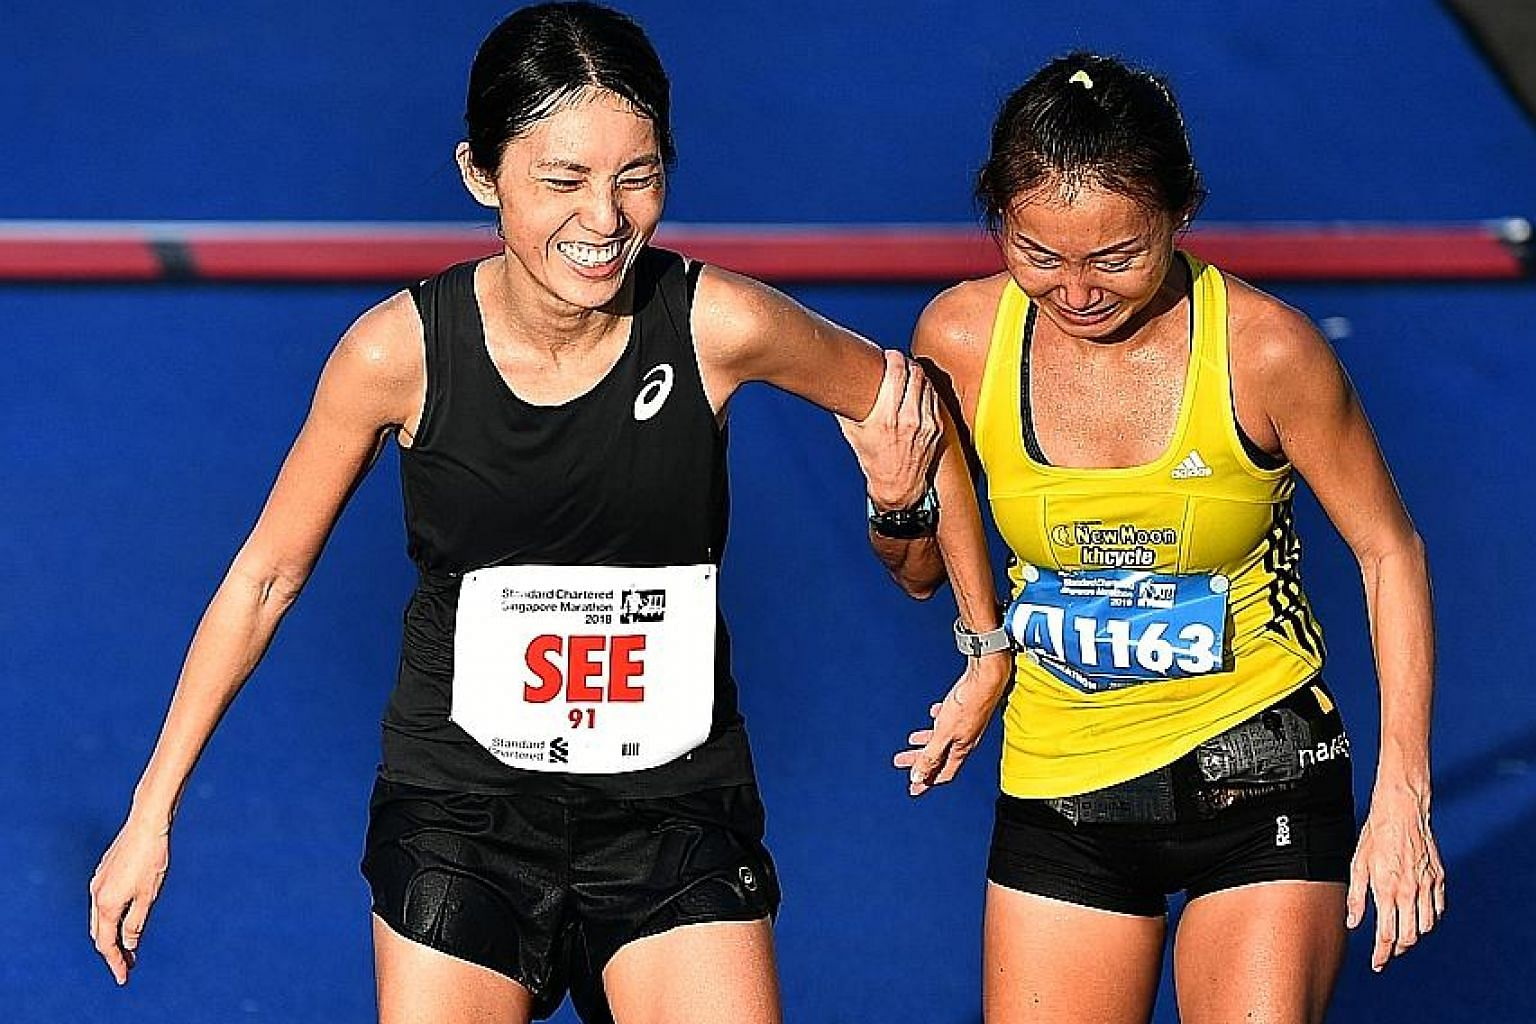 Lim Baoying helping Rachel See after the latter crossed the finish line at the Standard Chartered Singapore Marathon on Dec 9 last year. The change in standings means See retained her 2017 title.